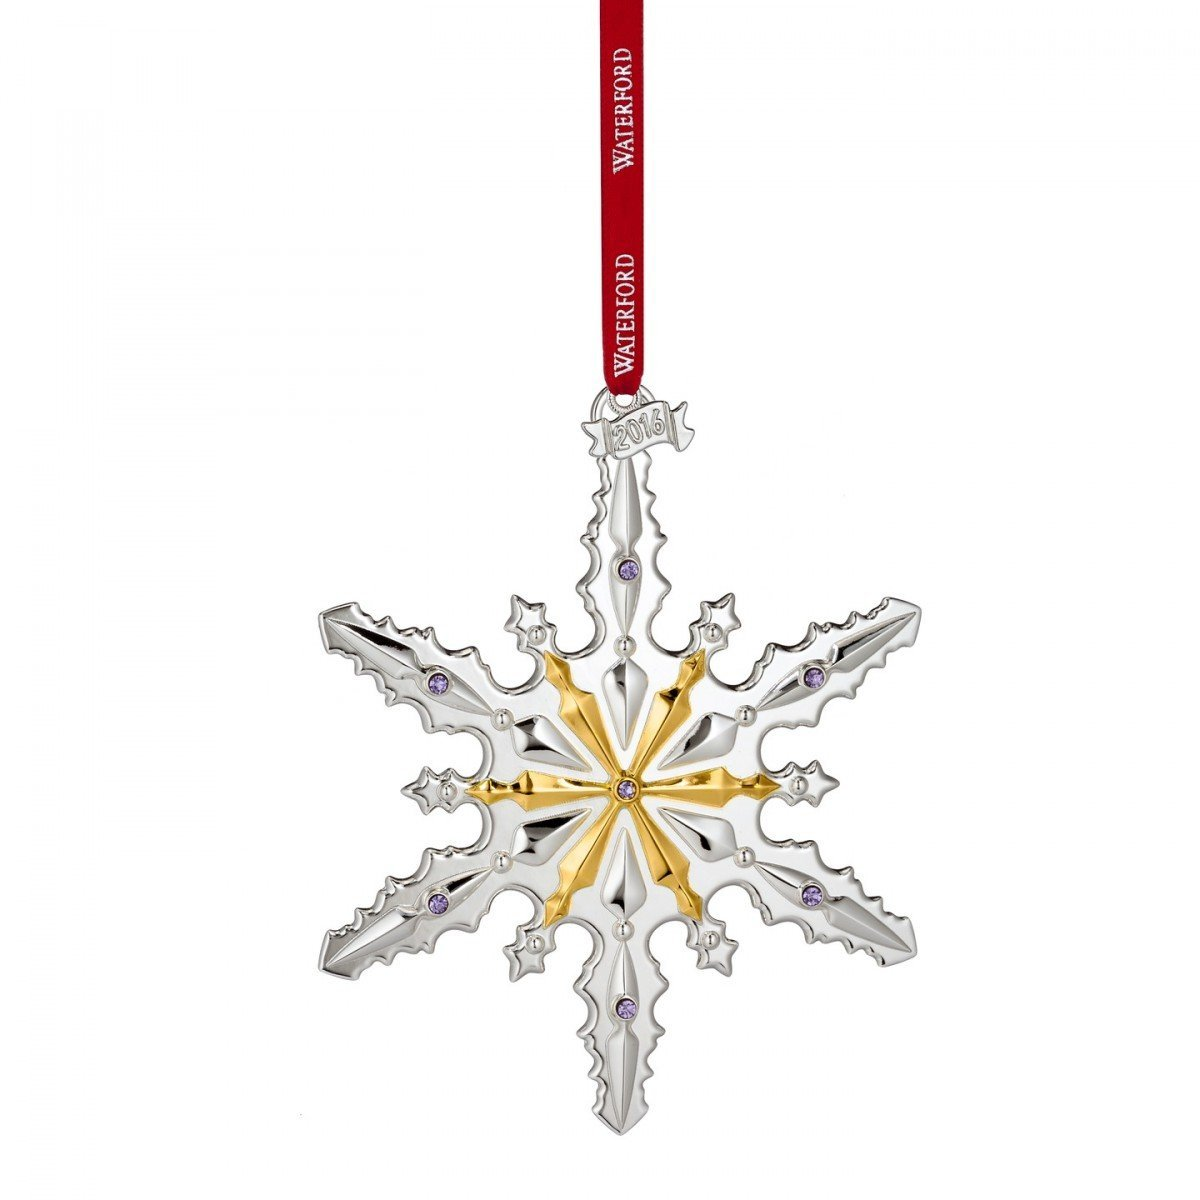 Reed /& Barton LX575 27th Edition Lunt Annual Sterling Snowflake